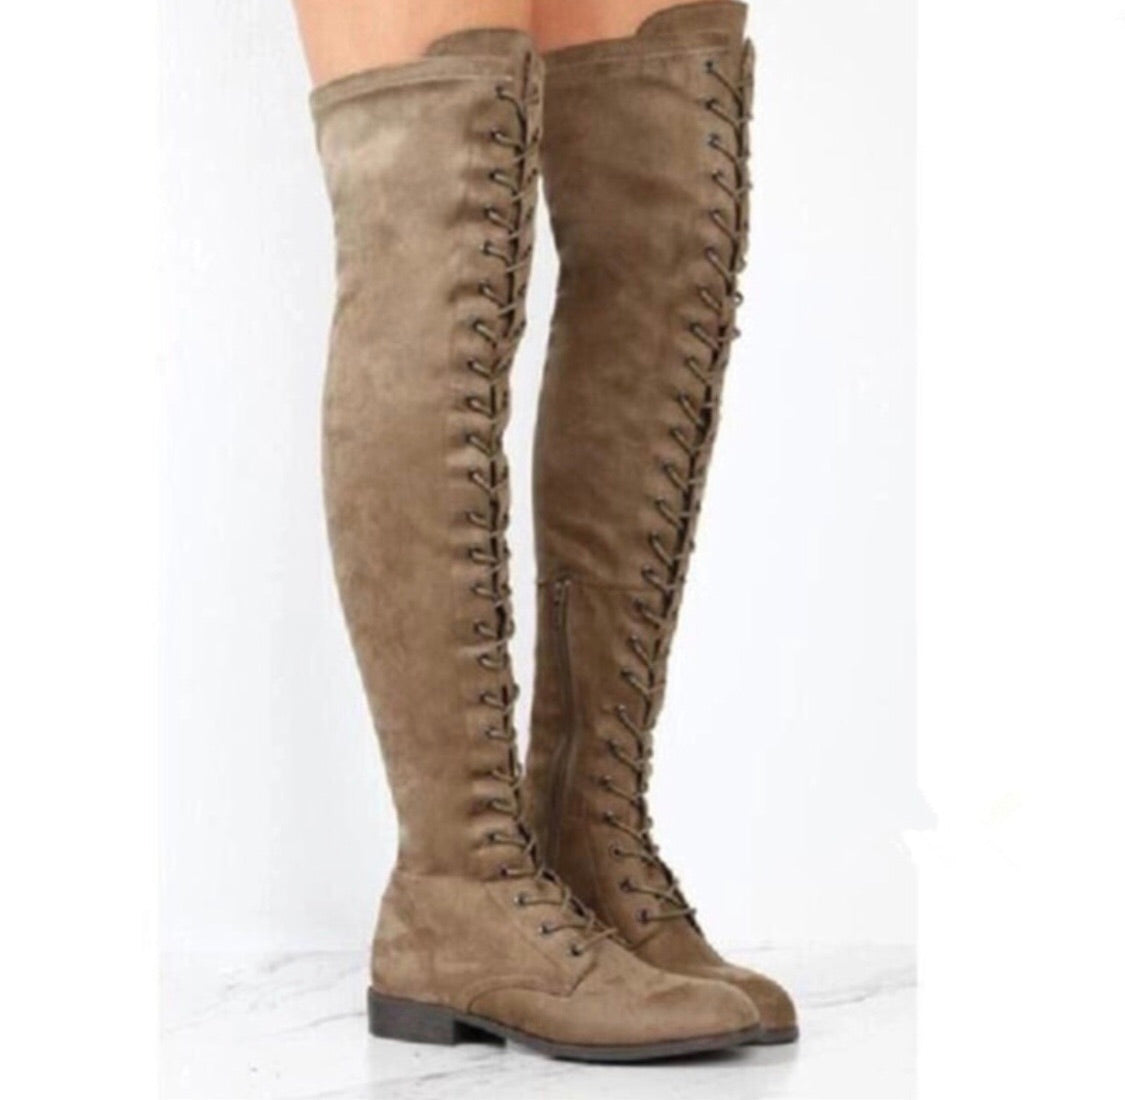 0f3c9c3f115 Thigh High Lace Up Boots – The Babe Force